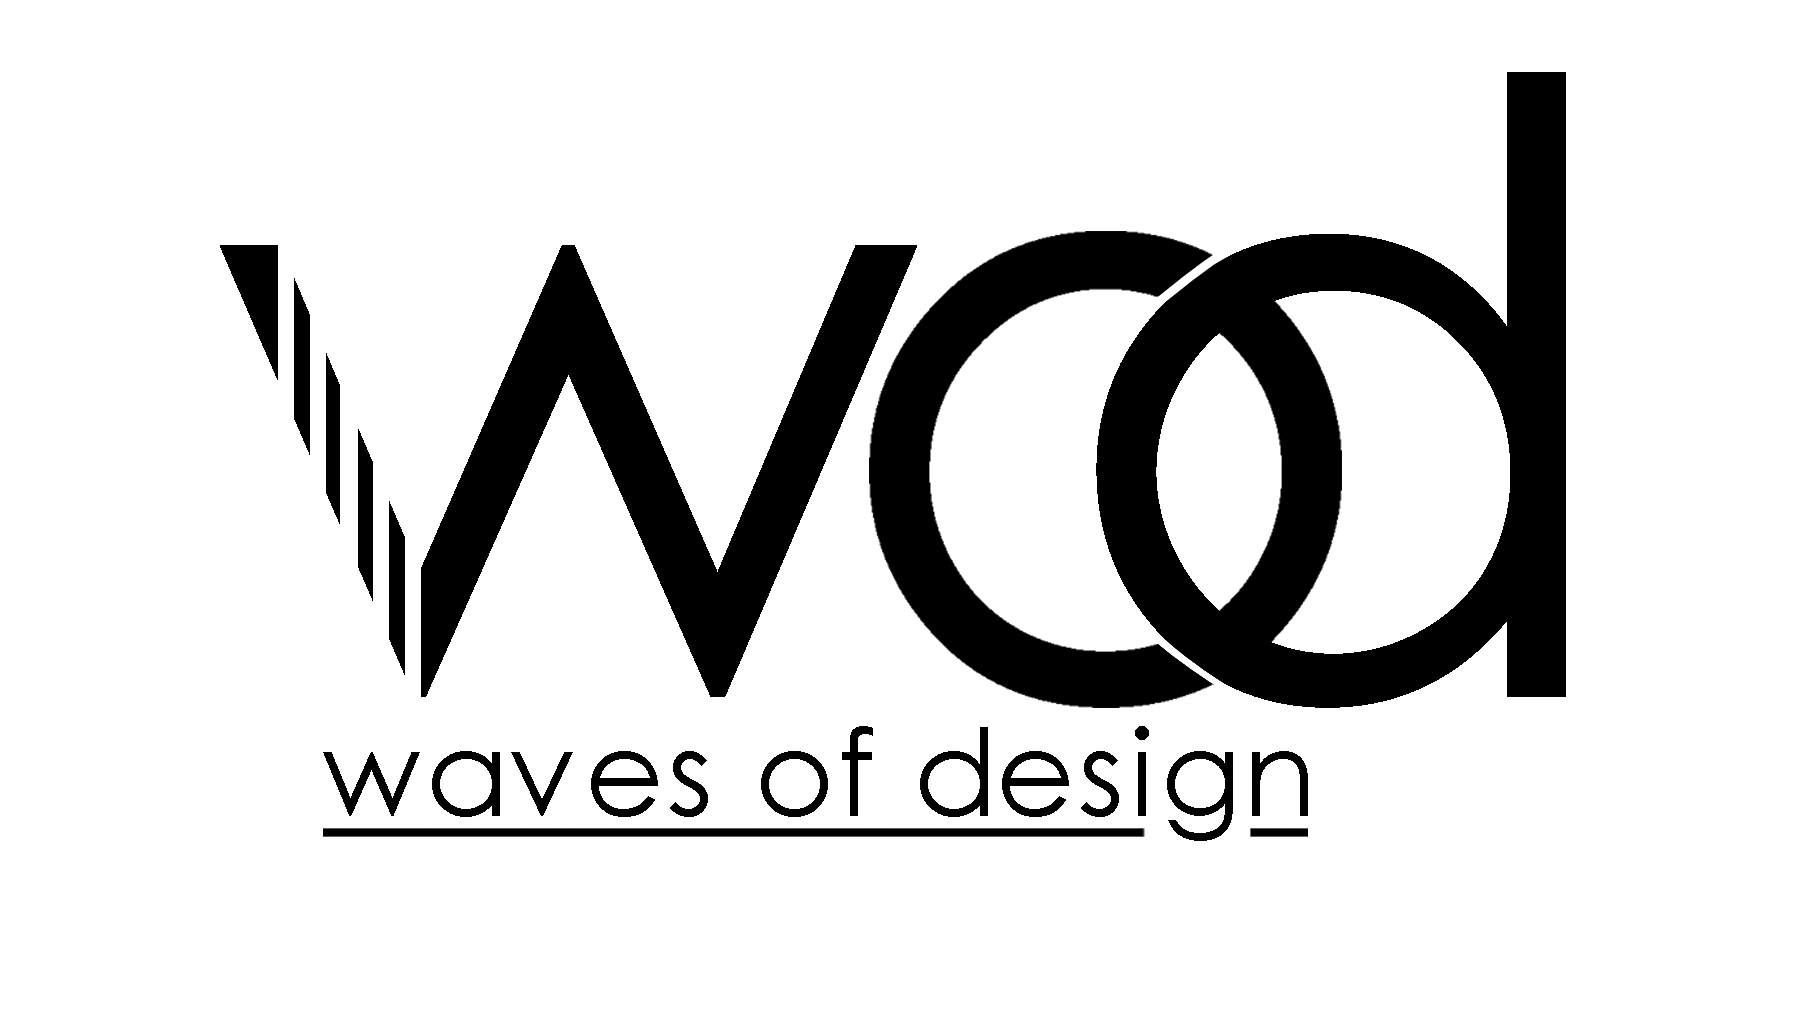 Waves of Design